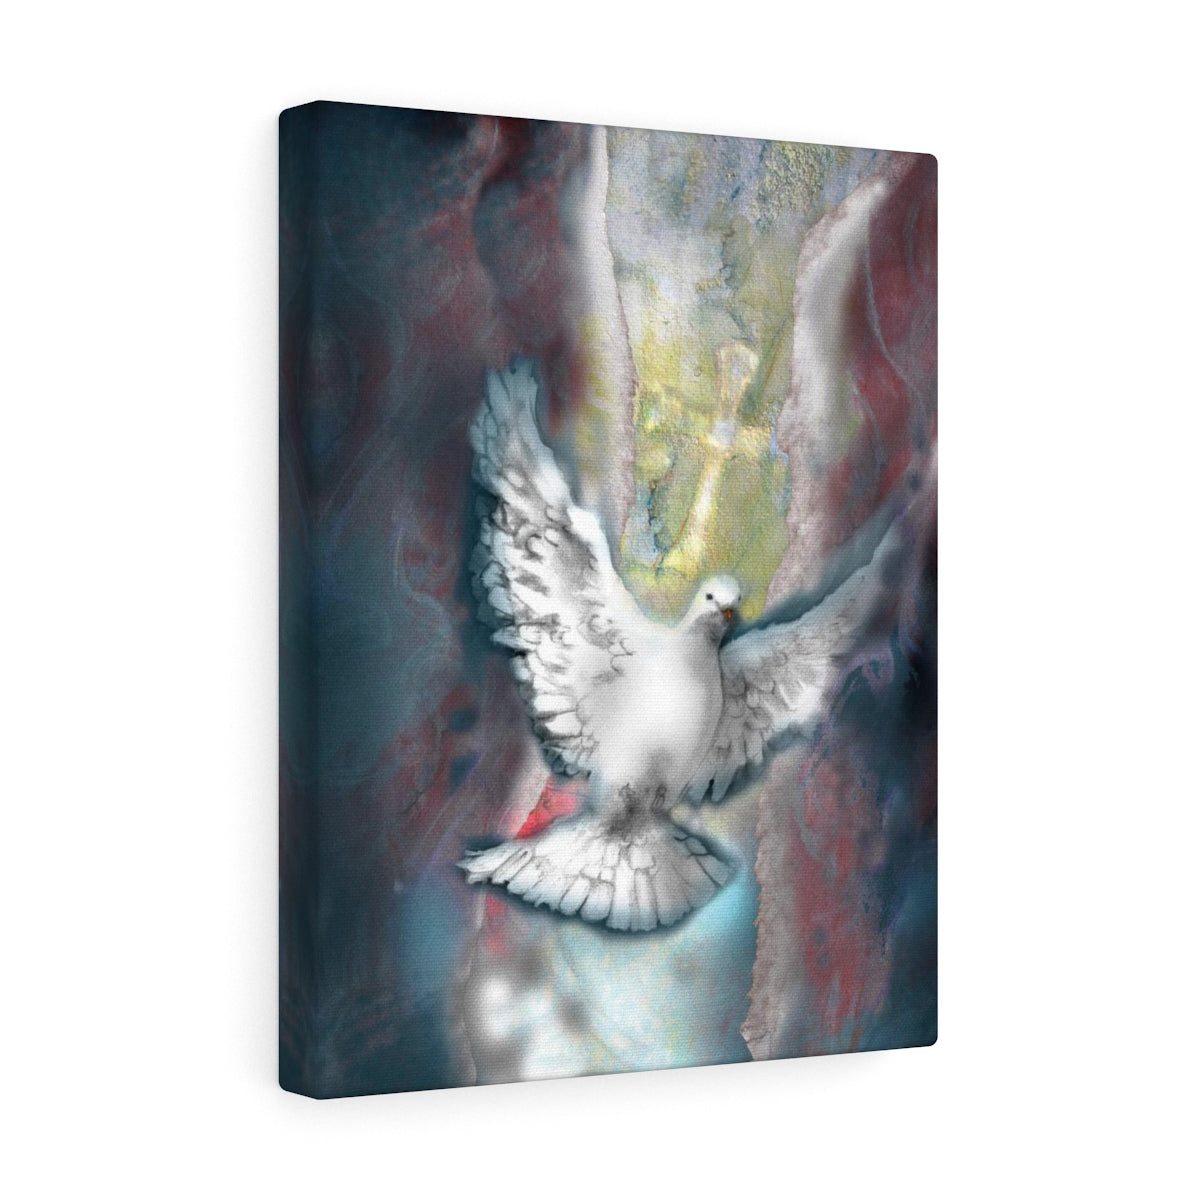 Right To The Soul (Dove): Canvas Art, wrapped edge